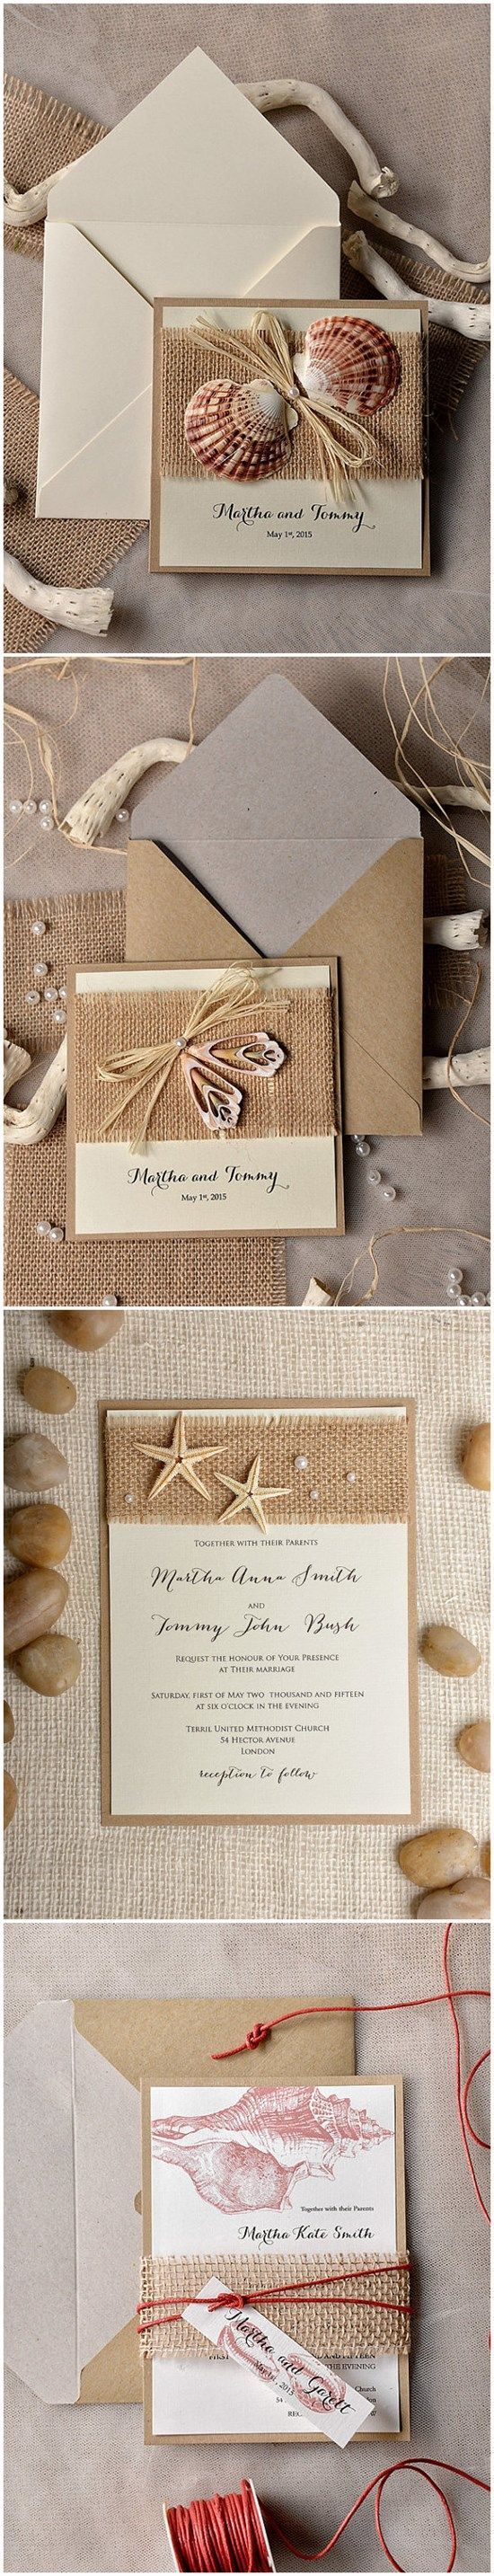 Rustic Beach Wedding Invitations   ----------------------------------------- These are images that inspire us. For more from A Monique Affair, follow us on instagram @amoniqueaffair